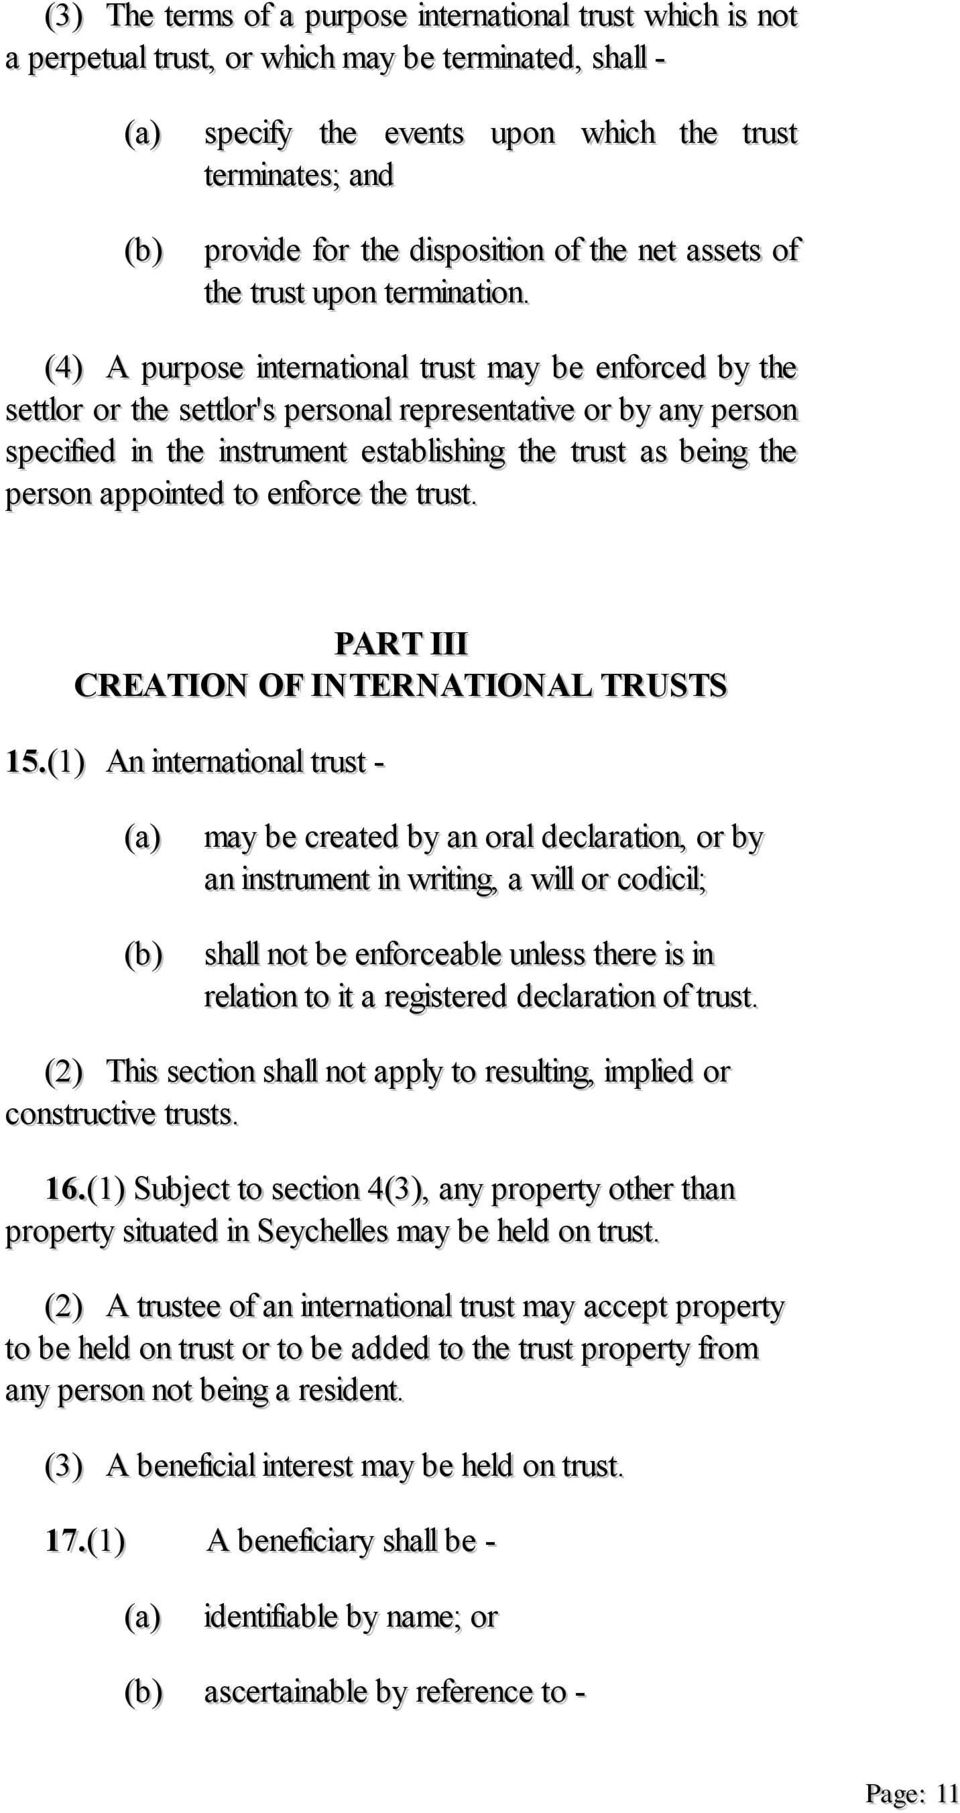 (4) A purpose international trust may be enforced by the settlor or the settlor's personal representative or by any person specified in the instrument establishing the trust as being the person